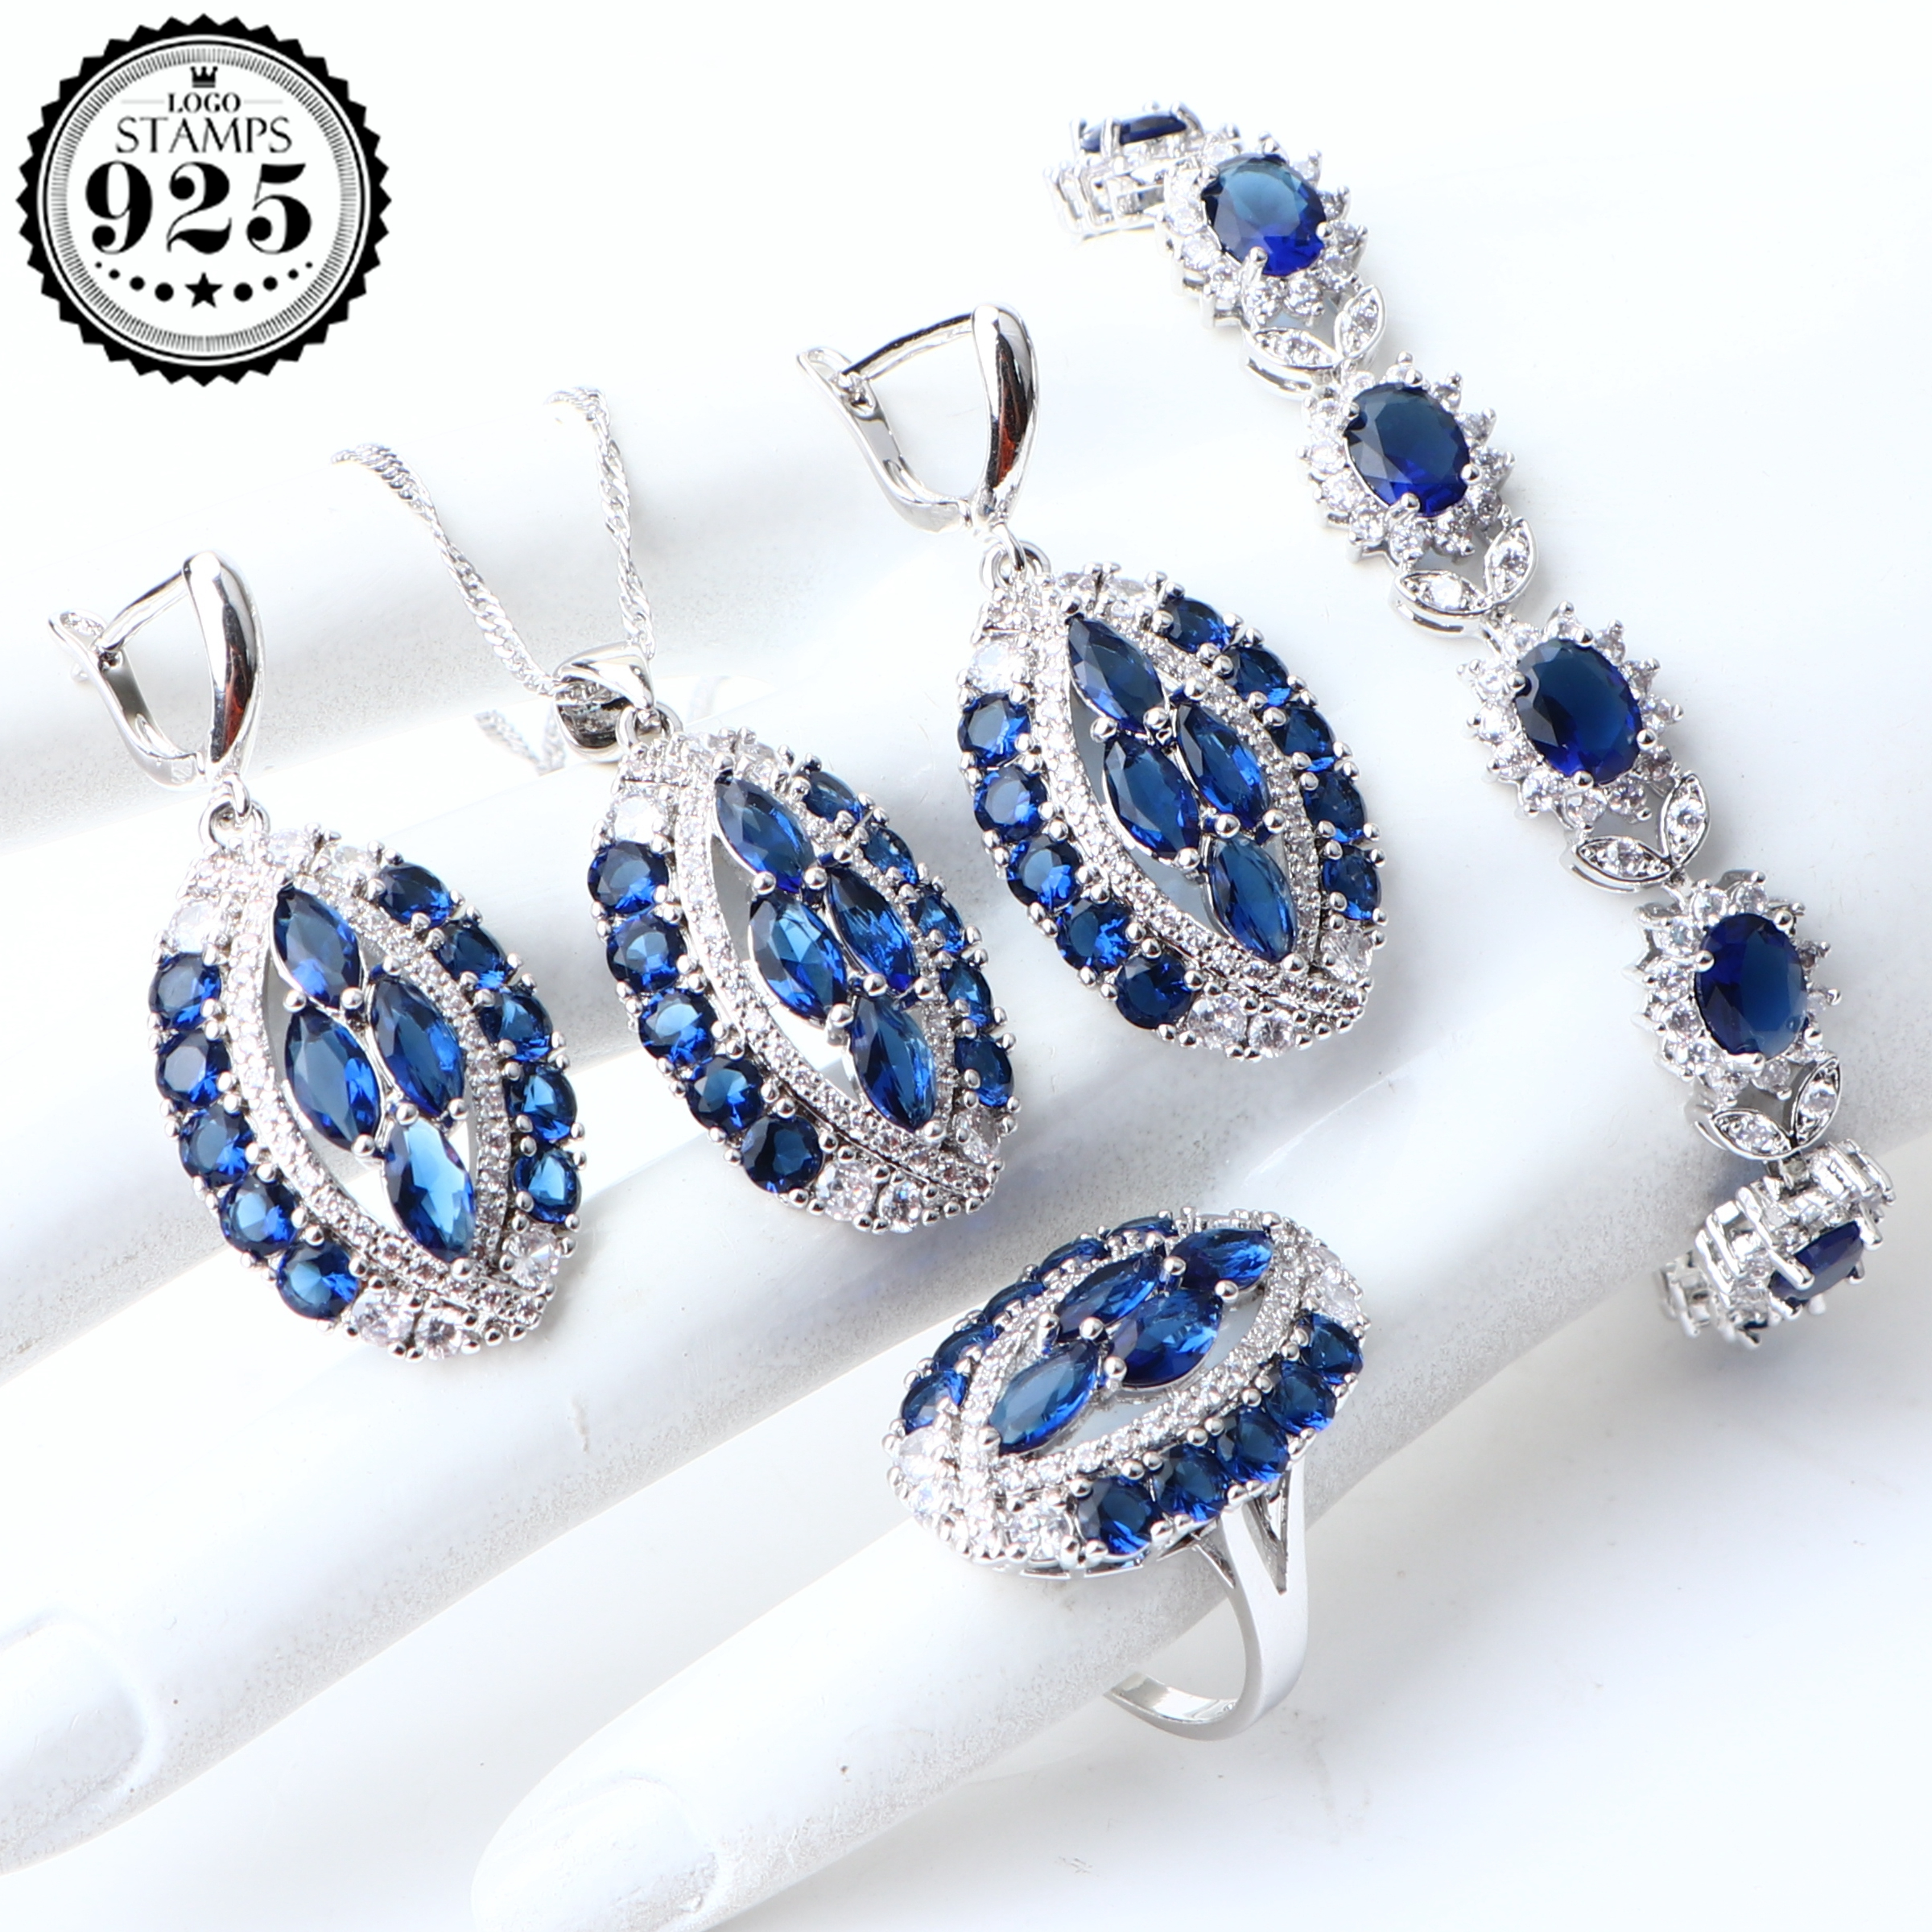 Pendant Jewelry-Sets Bracelet Necklace Ring-Stone Wedding-Earrings 925-Silver Bridal